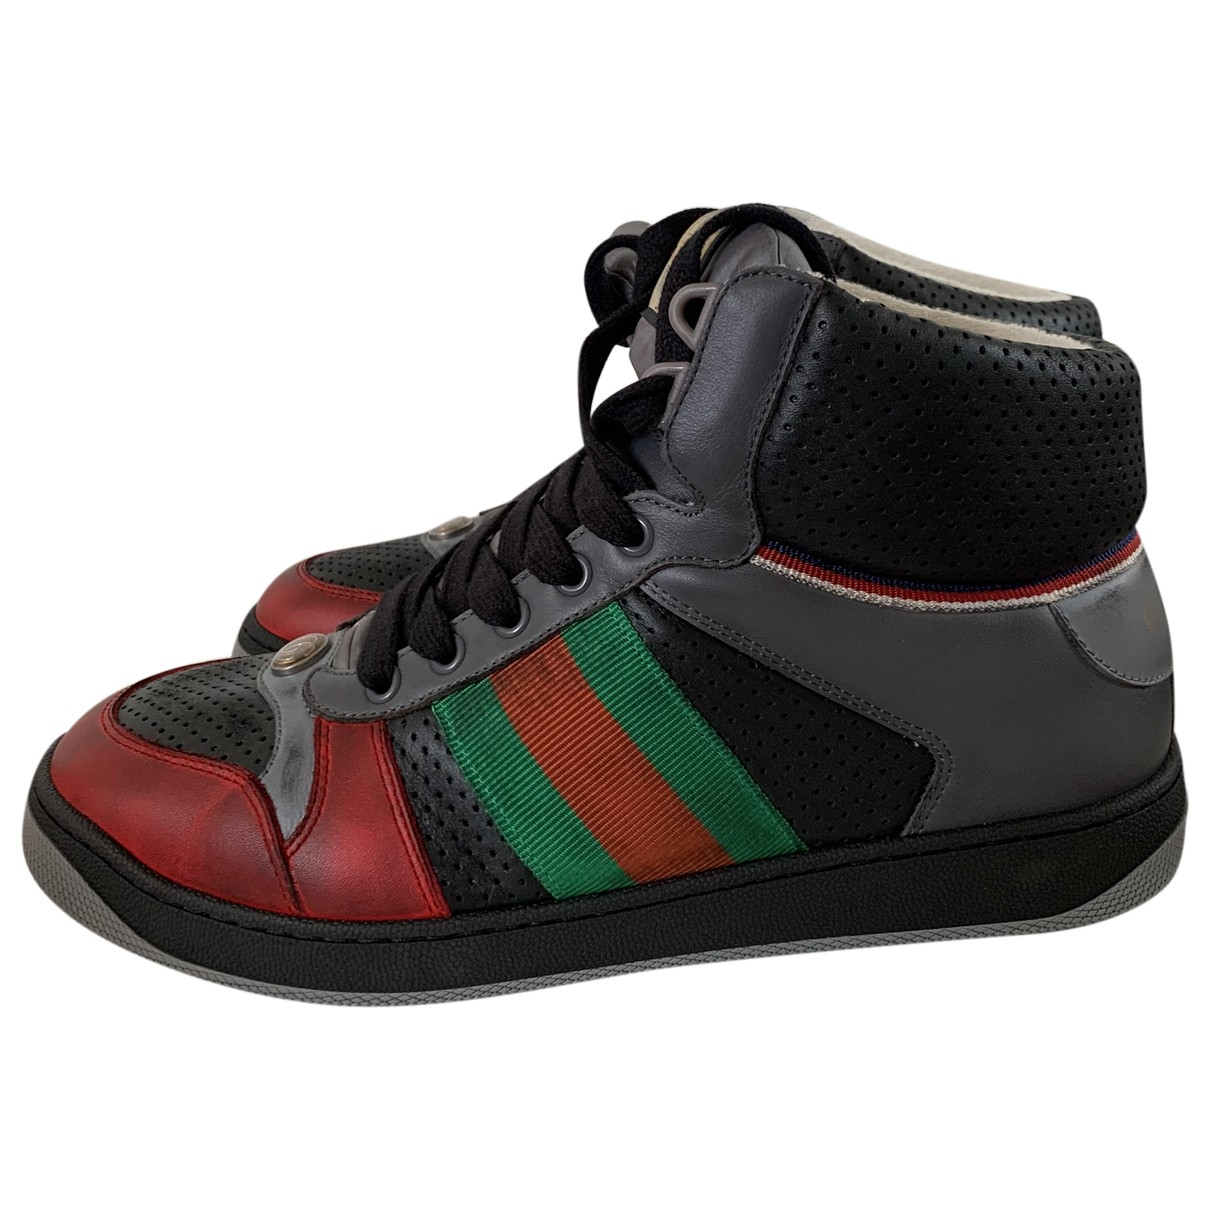 Gucci Screener Multicolour Leather Trainers for Men 7 UK